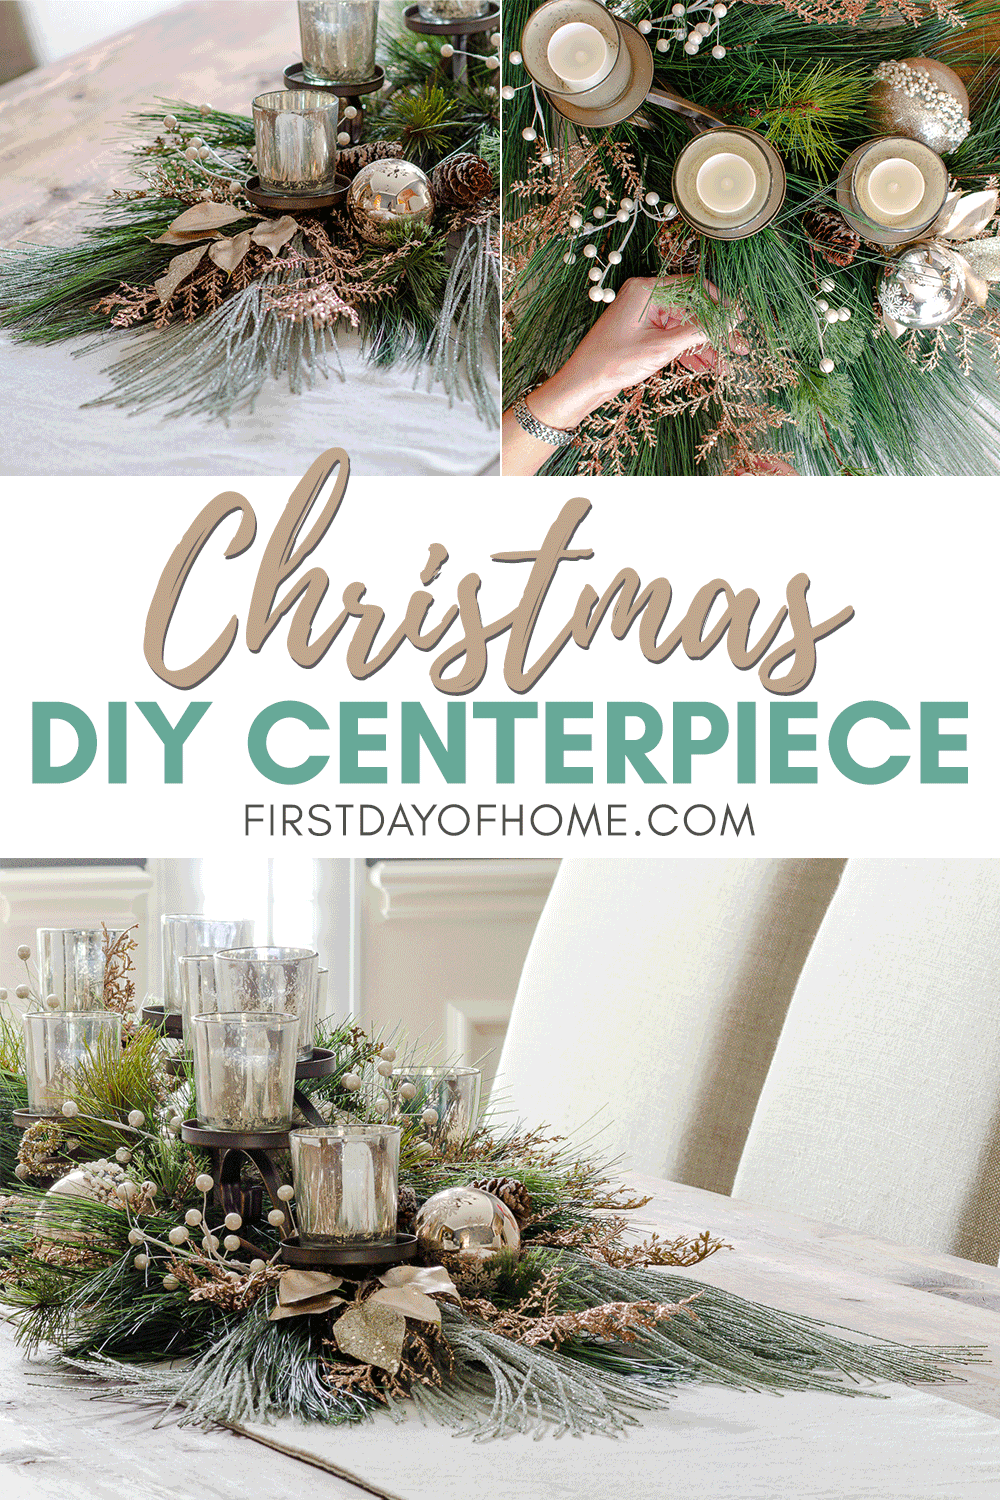 How To Make A Mercury Glass Holiday Centerpiece That Pops Christmas Centerpieces Diy Holiday Centerpieces Holiday Centerpieces Diy